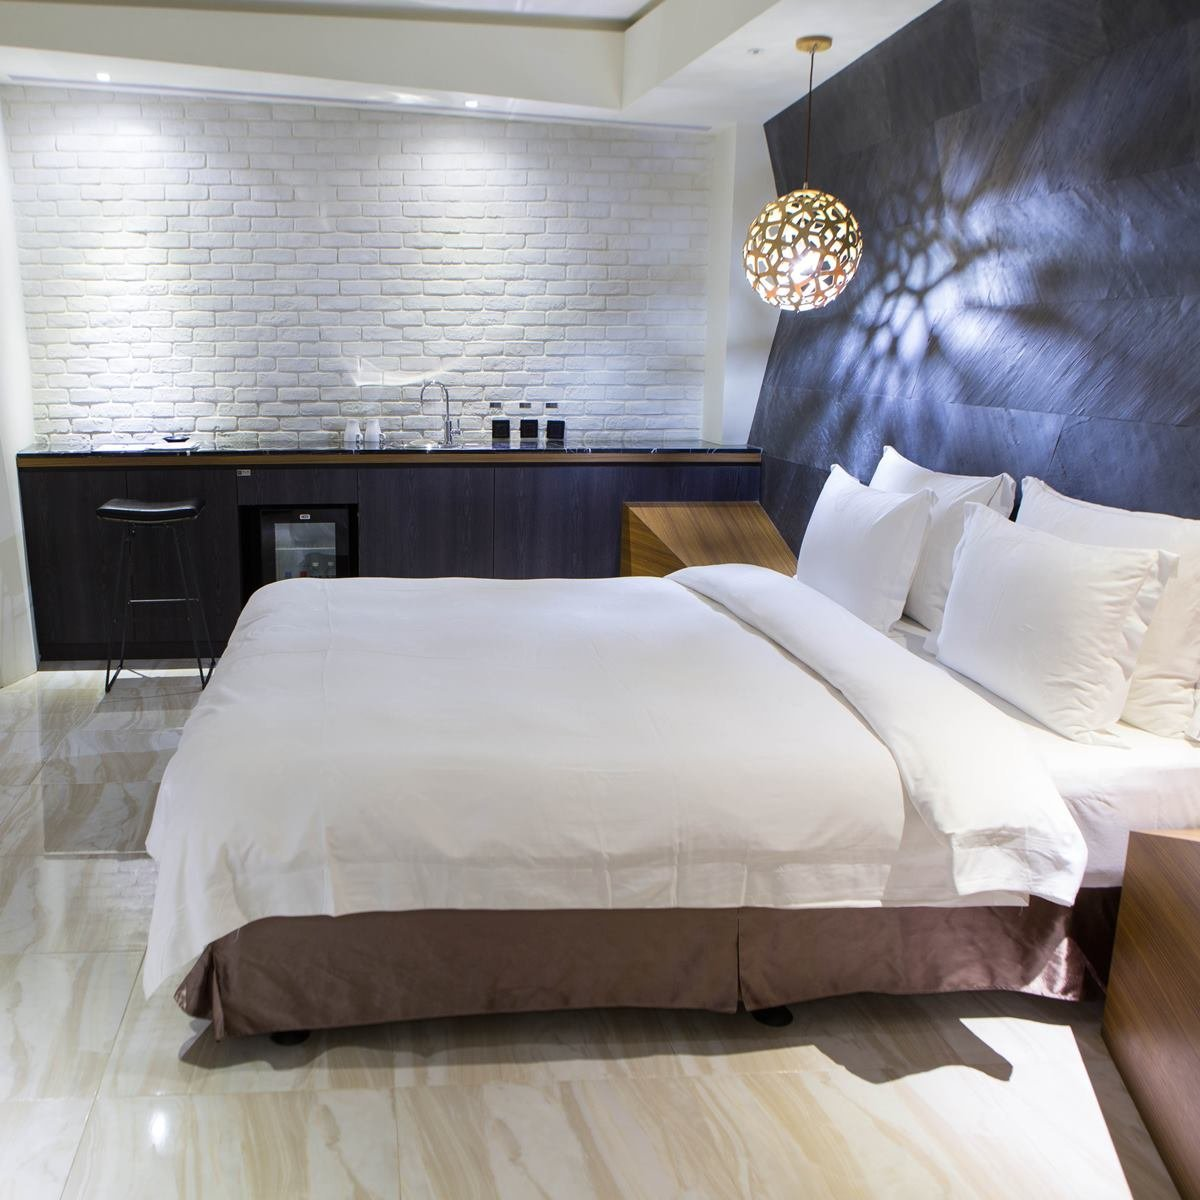 clean-motel-bed